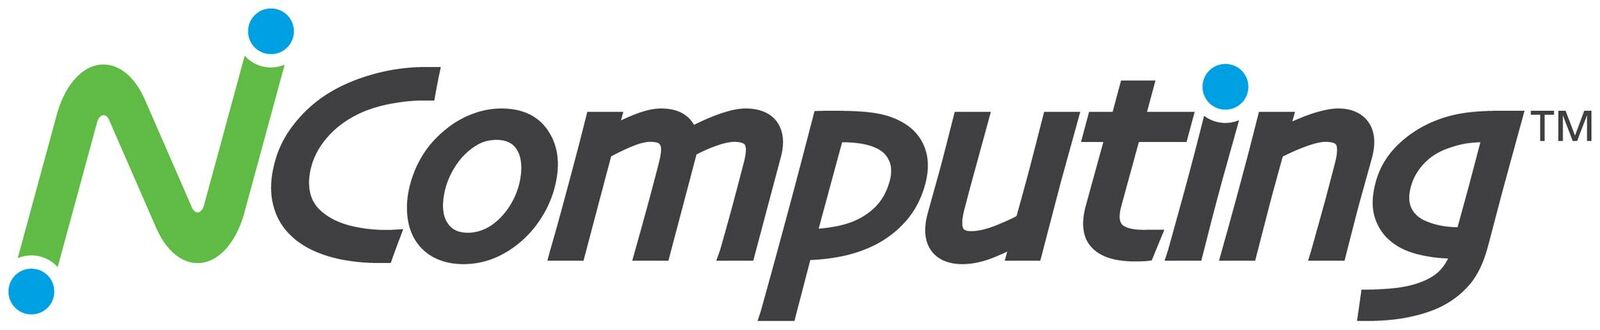 ncomputing logo